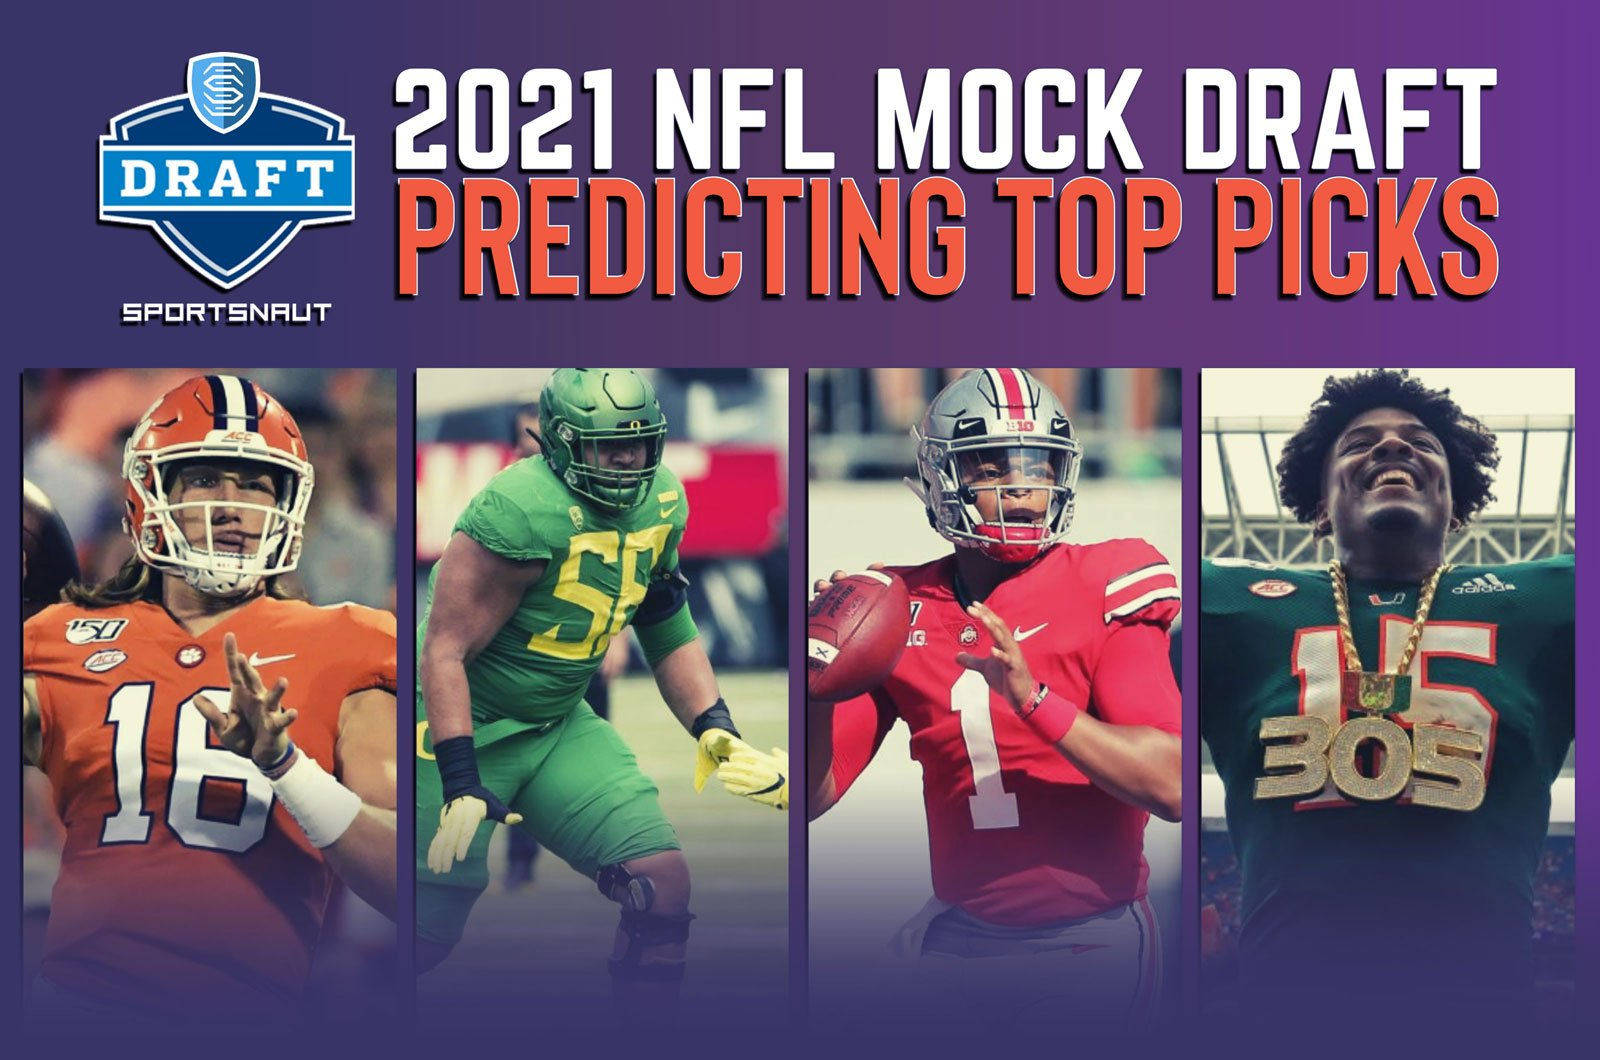 Best Rookie Wr 2021 2021 NFL mock draft: Predicting top picks from loaded class